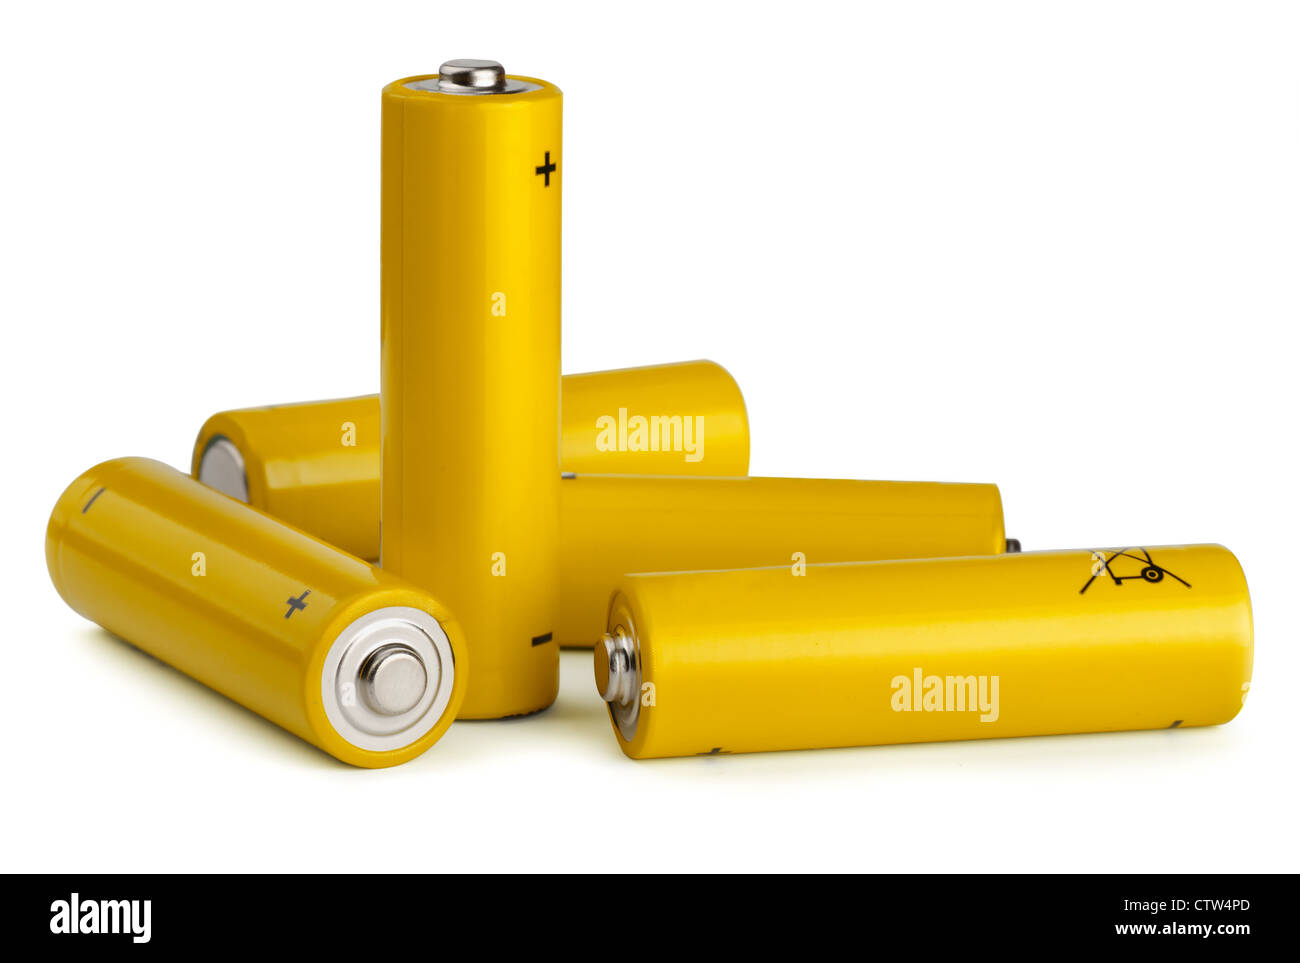 Group of yellow AA size batteries isolated on white - Stock Image